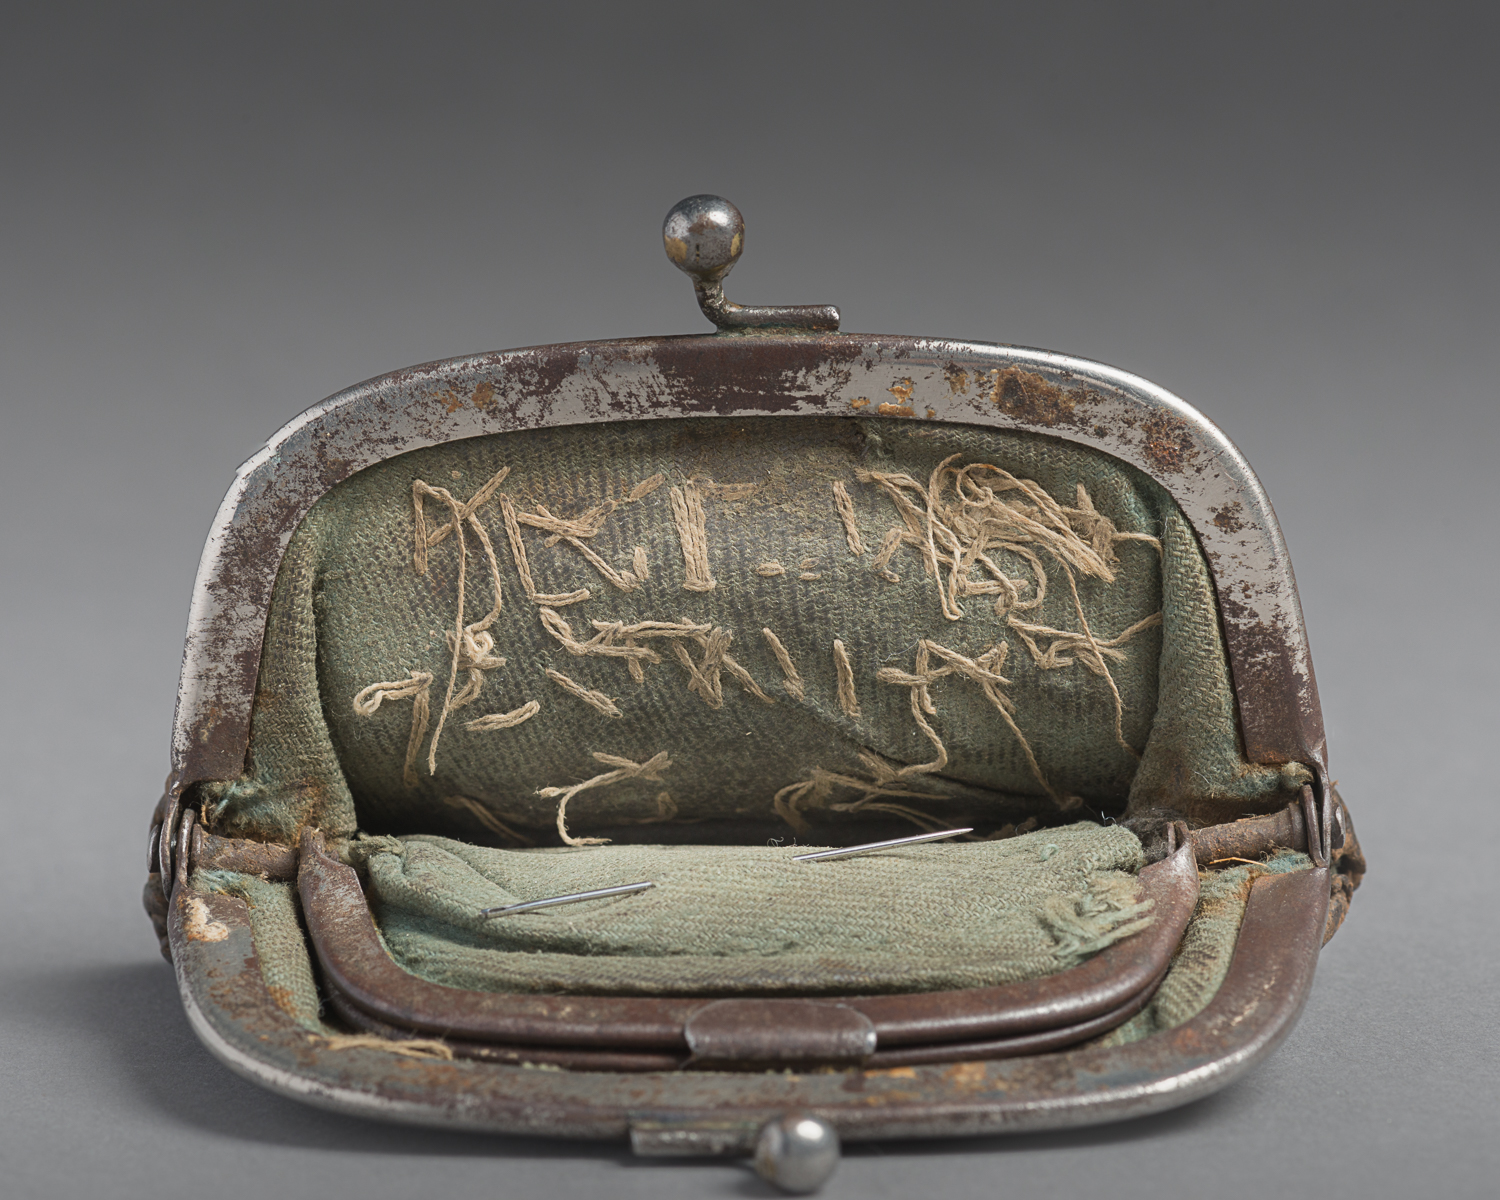 Despite the difficulty in doing so, Paul hid this wallet while imprisoned in the Dachau and Bergen-Belsen camps in Germany. (Photo: Peter Berra)